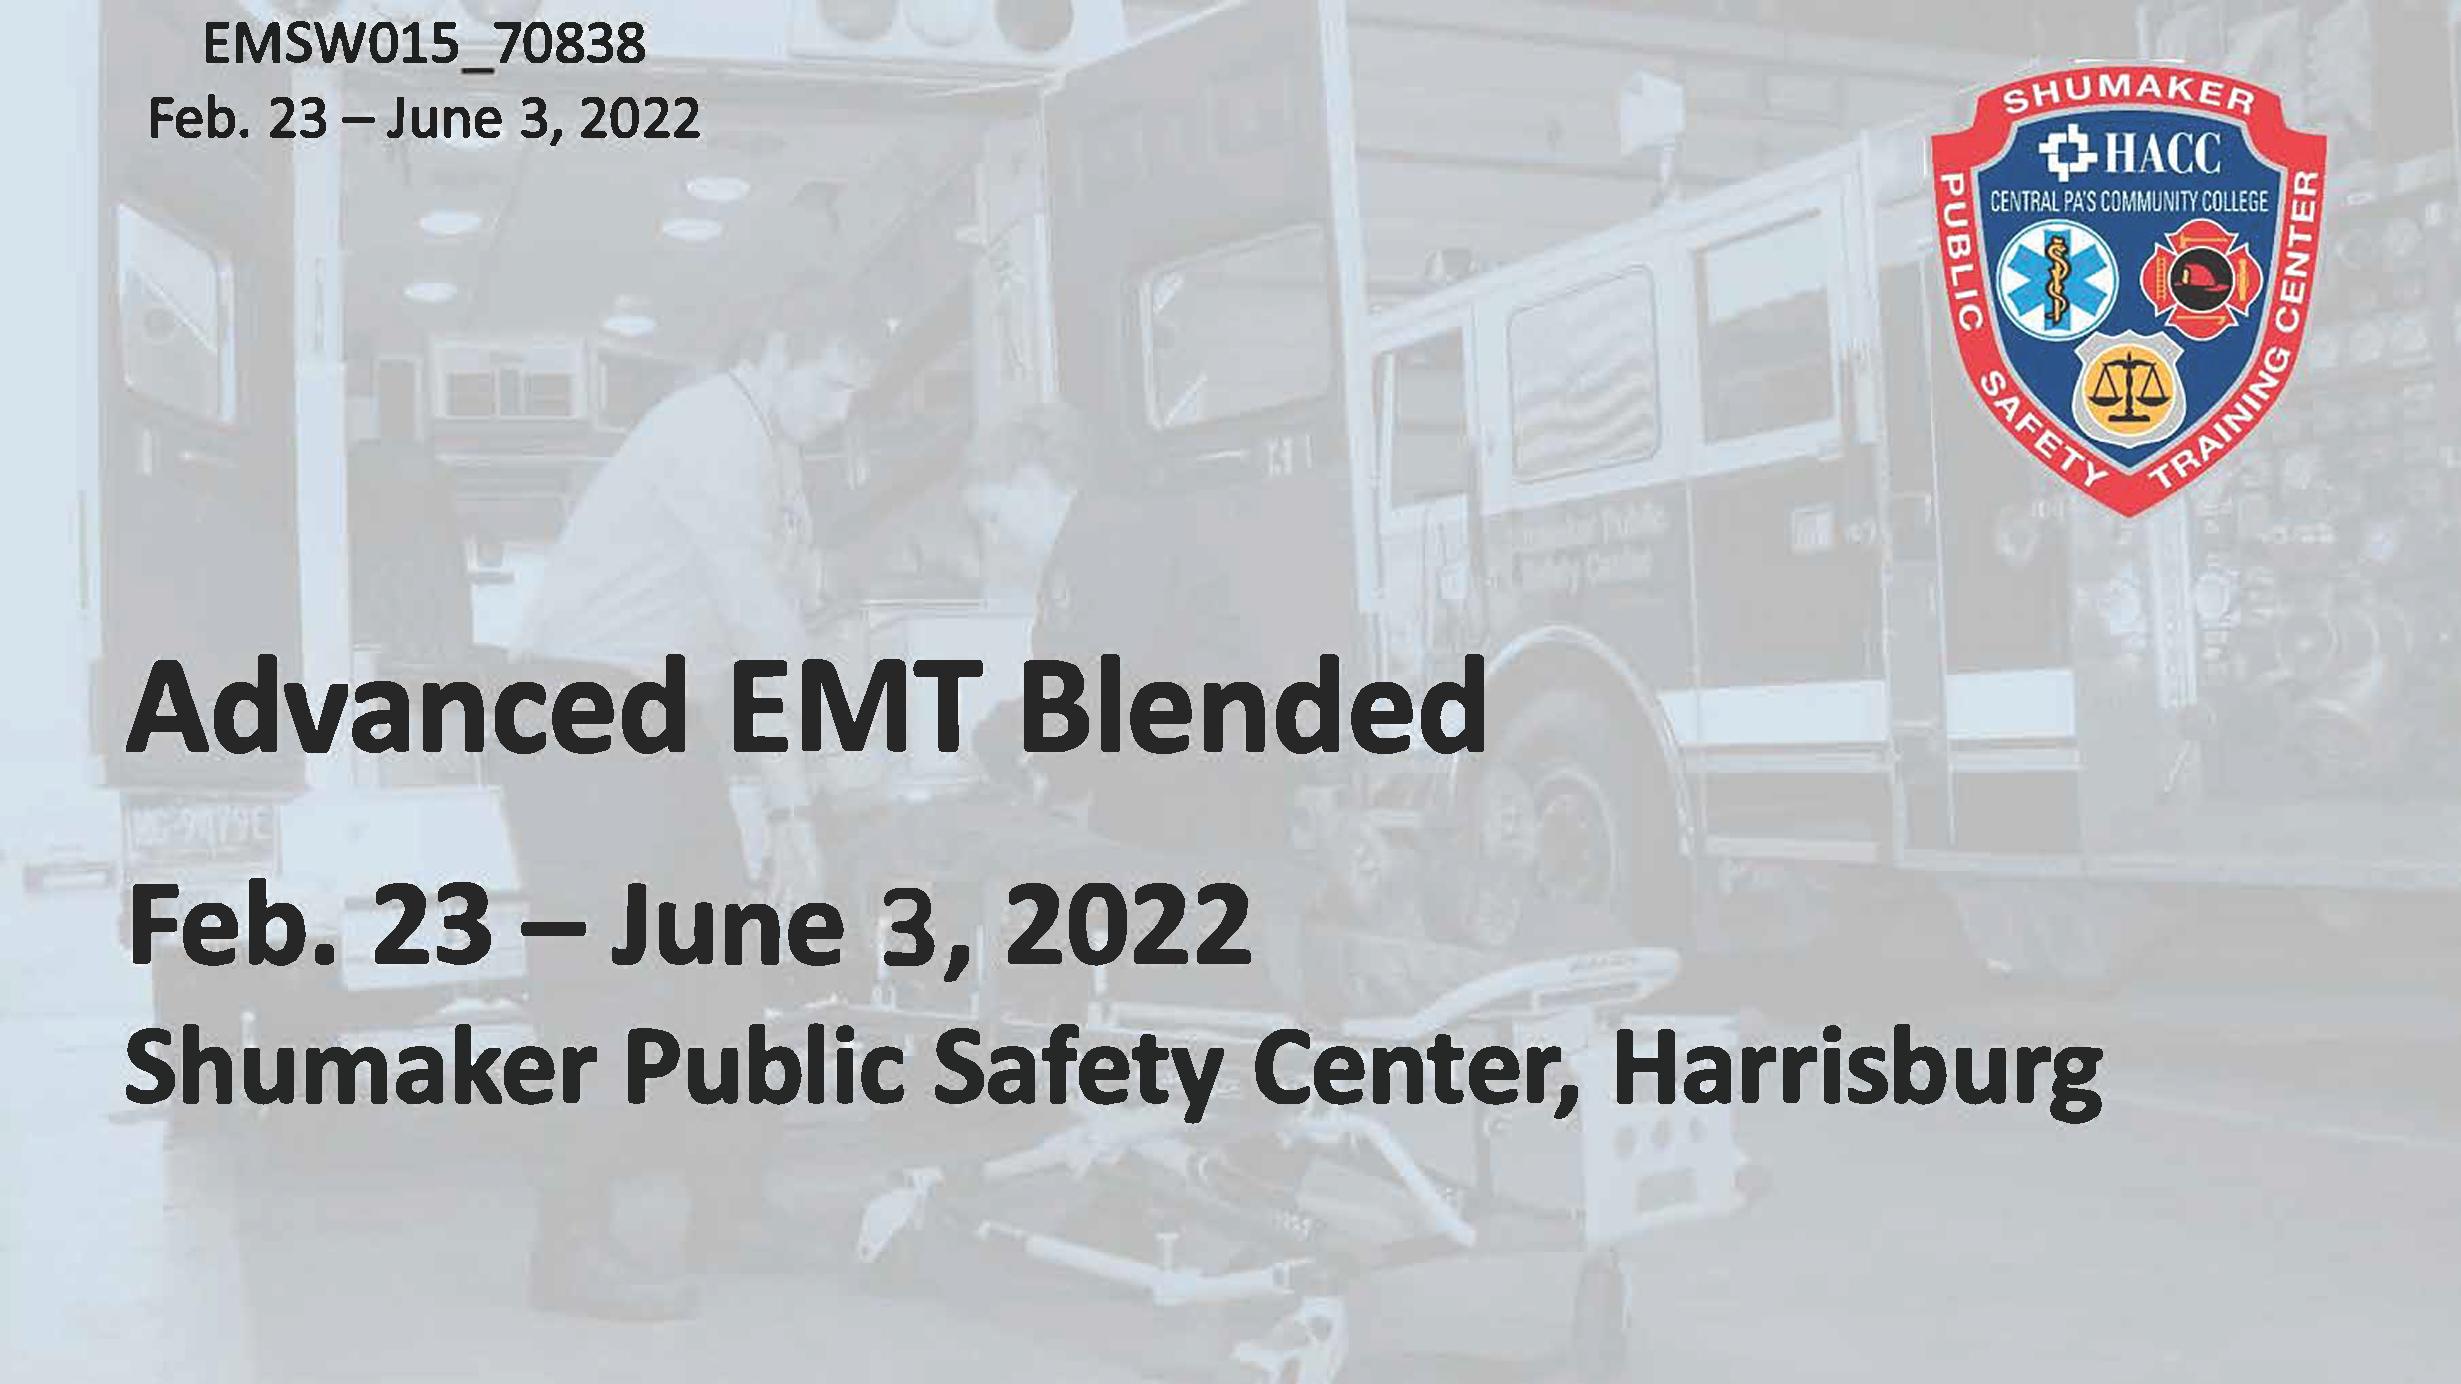 AEMT Blended Wednesday (EMSW015_CRN70838) Dauphin County